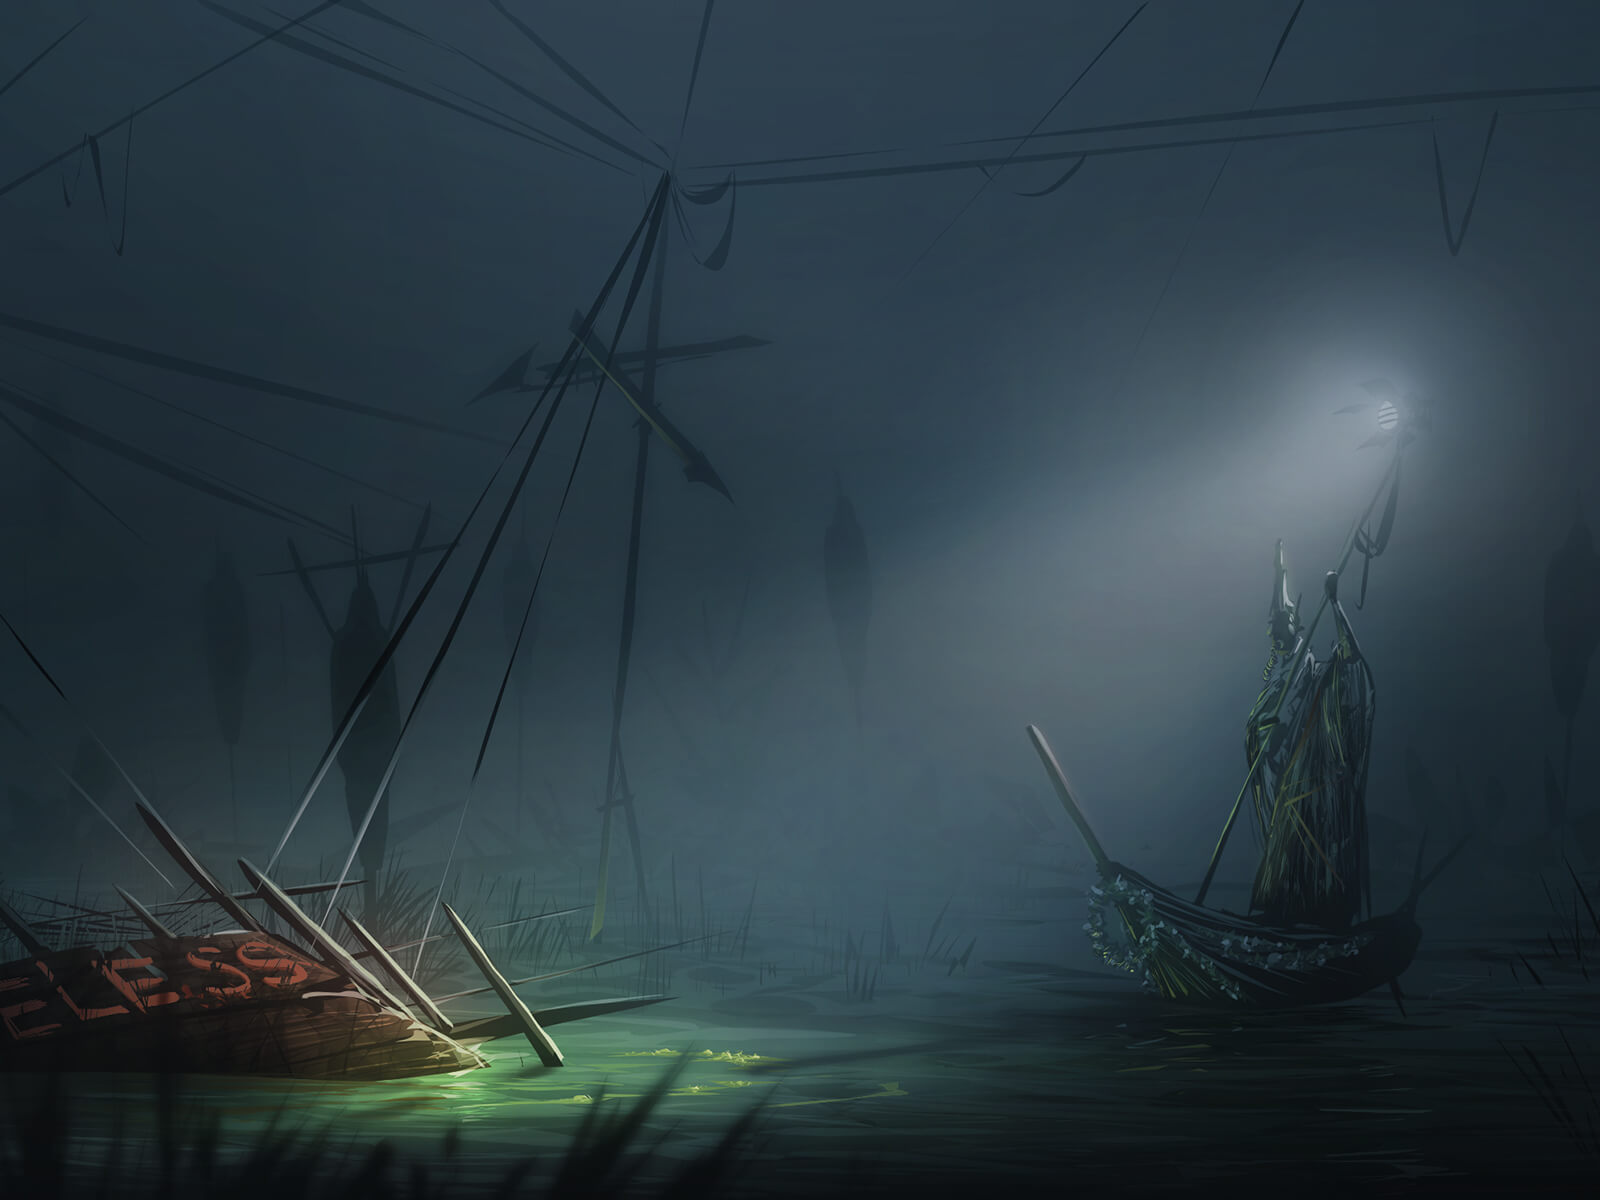 A man in a pointed hat steers a boat in darkness toward a shipwreck